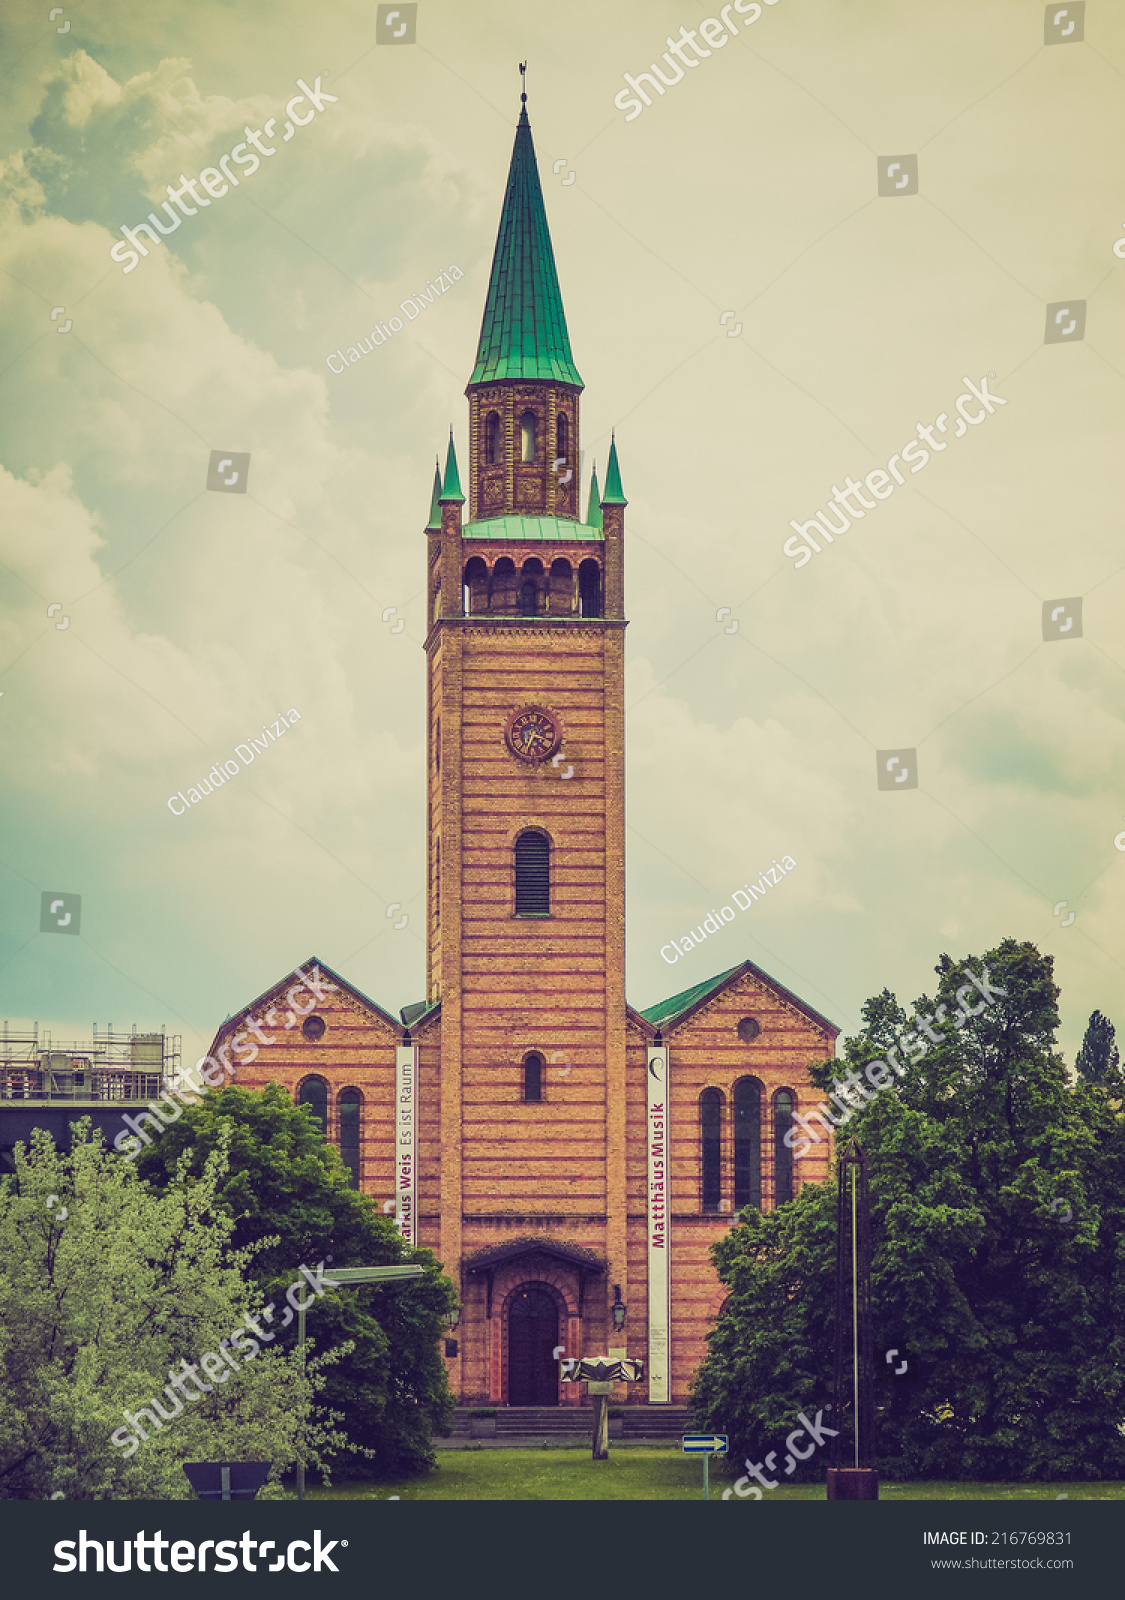 vintage looking mattaus kirche gothic church stock photo 216769831 shutterstock. Black Bedroom Furniture Sets. Home Design Ideas